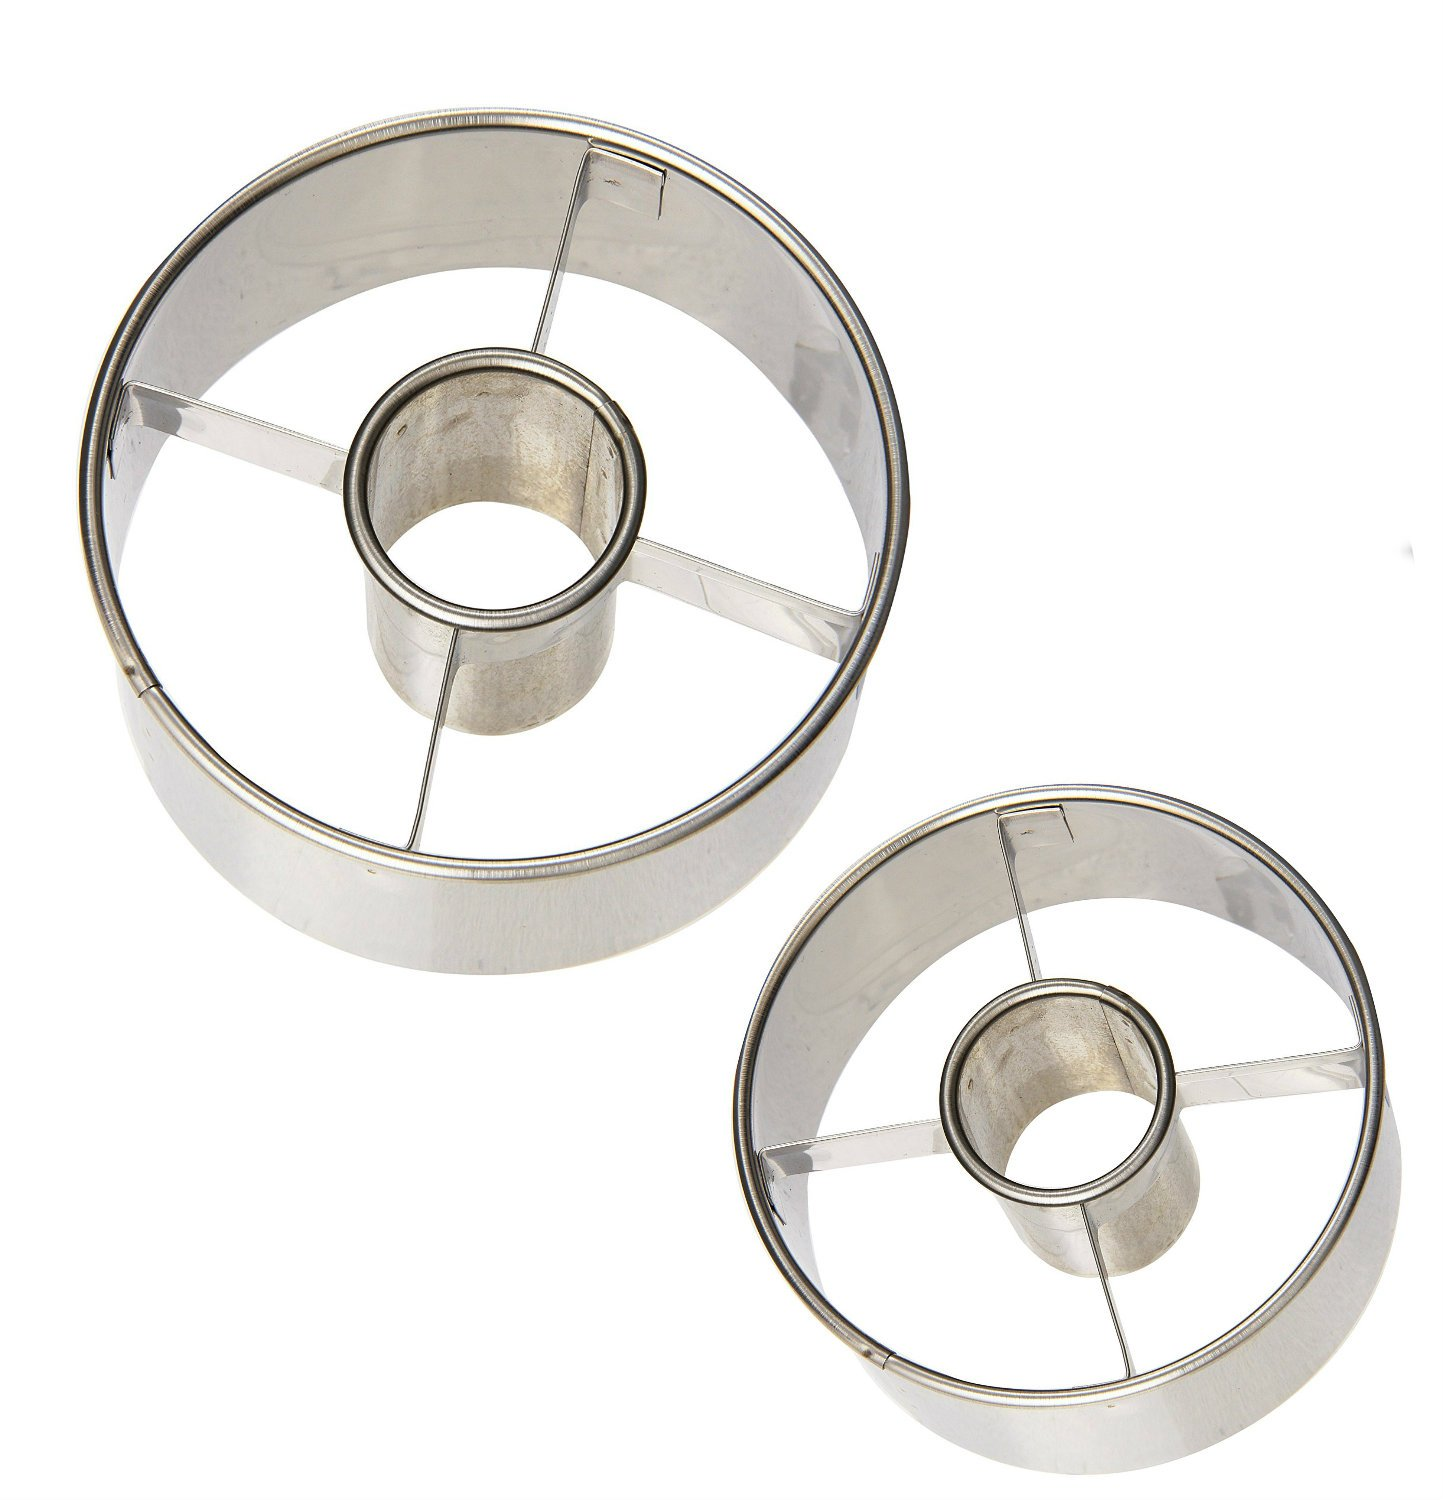 Ateco Stainless Steel Donut Cutter Set of 2 : Ø 2 1/2'' and 3 1/2''.